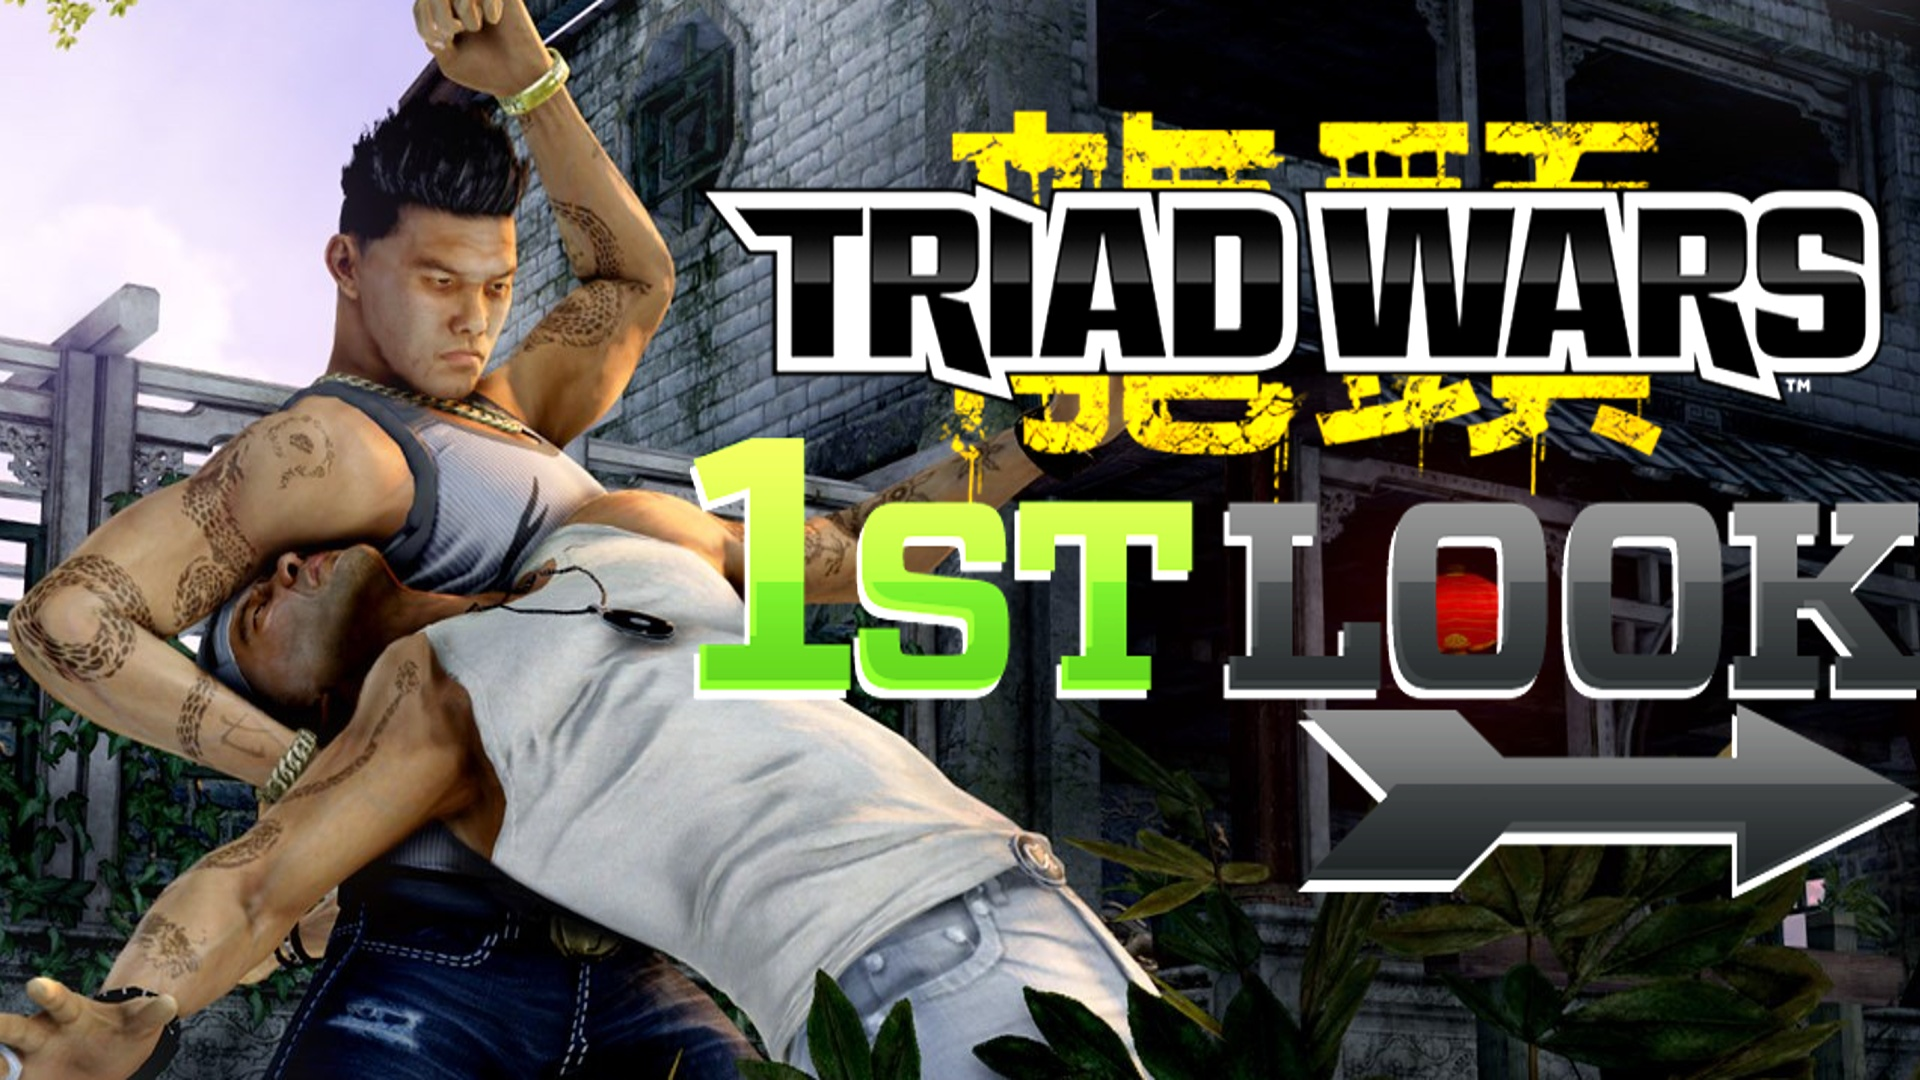 MMOHuts takes a look at Triad Wars